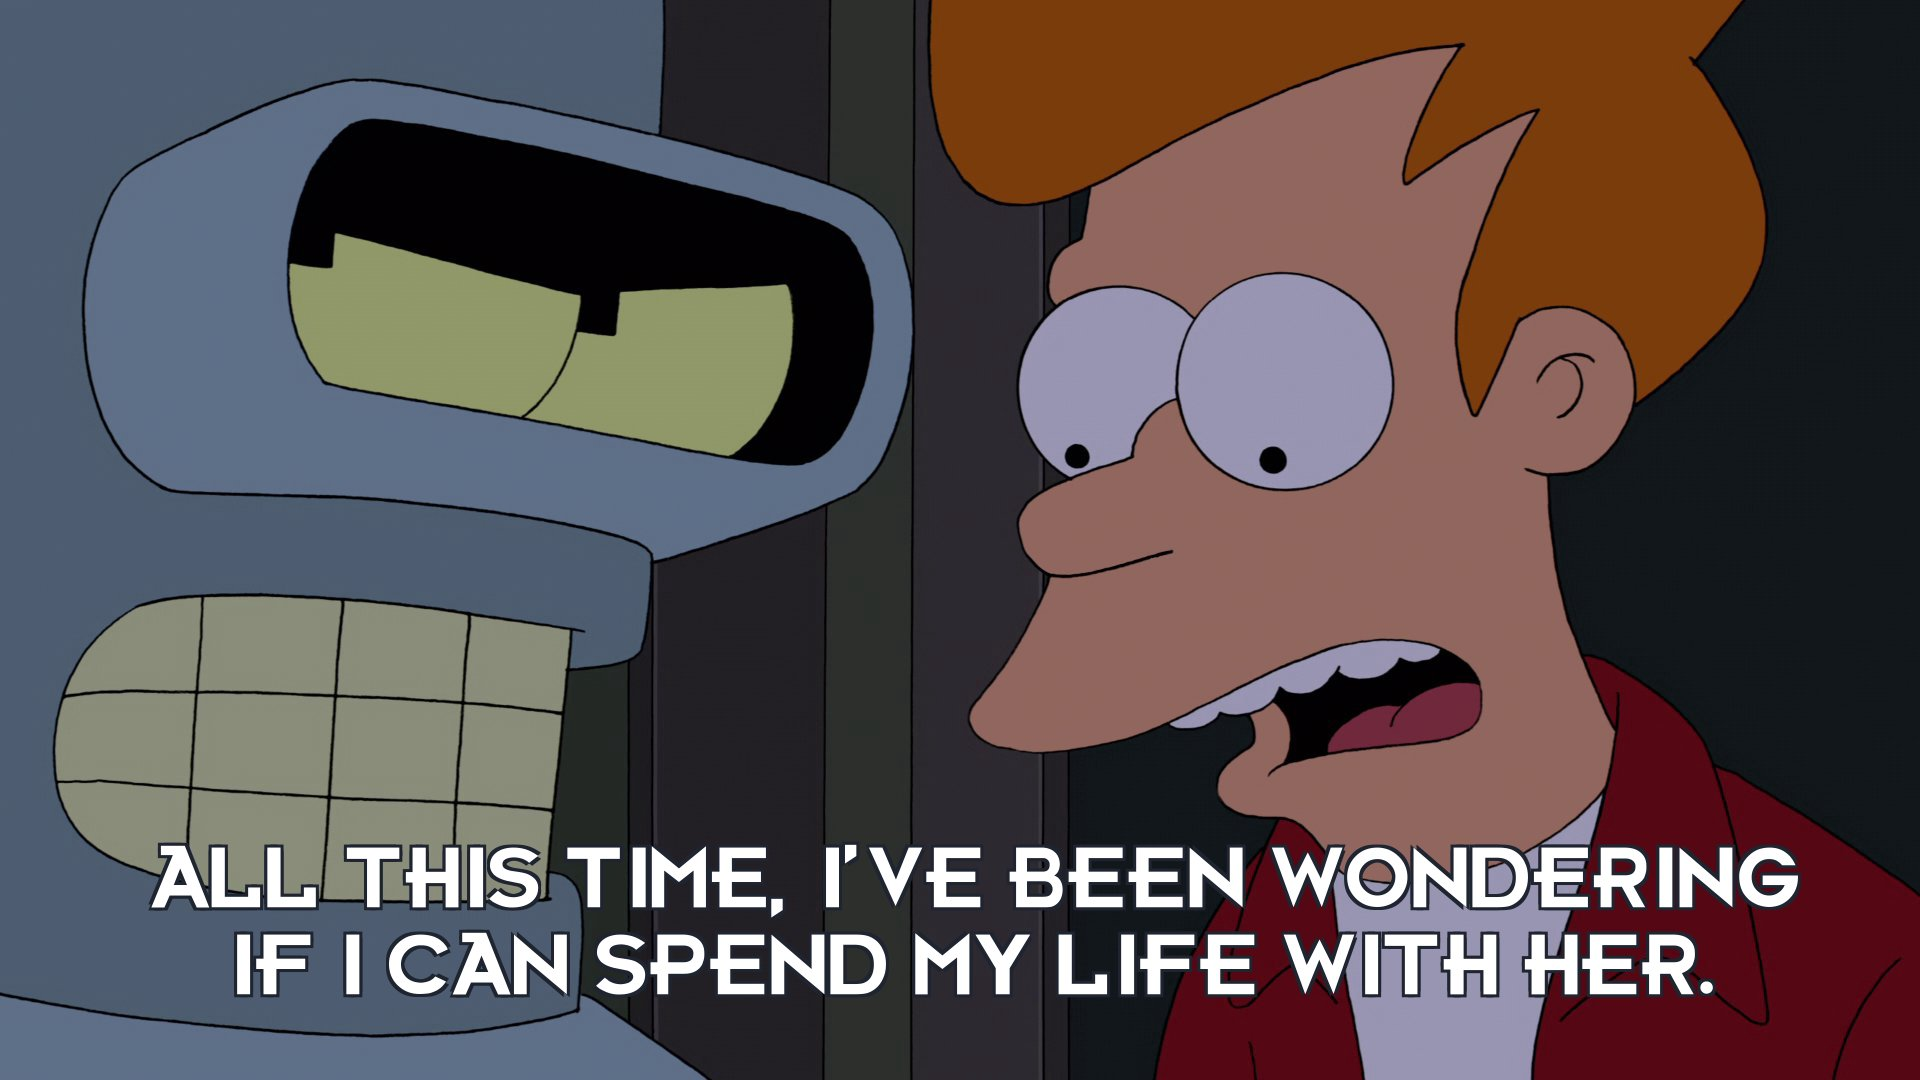 Philip J Fry: All this time, I've been wondering if I can spend my life with her.